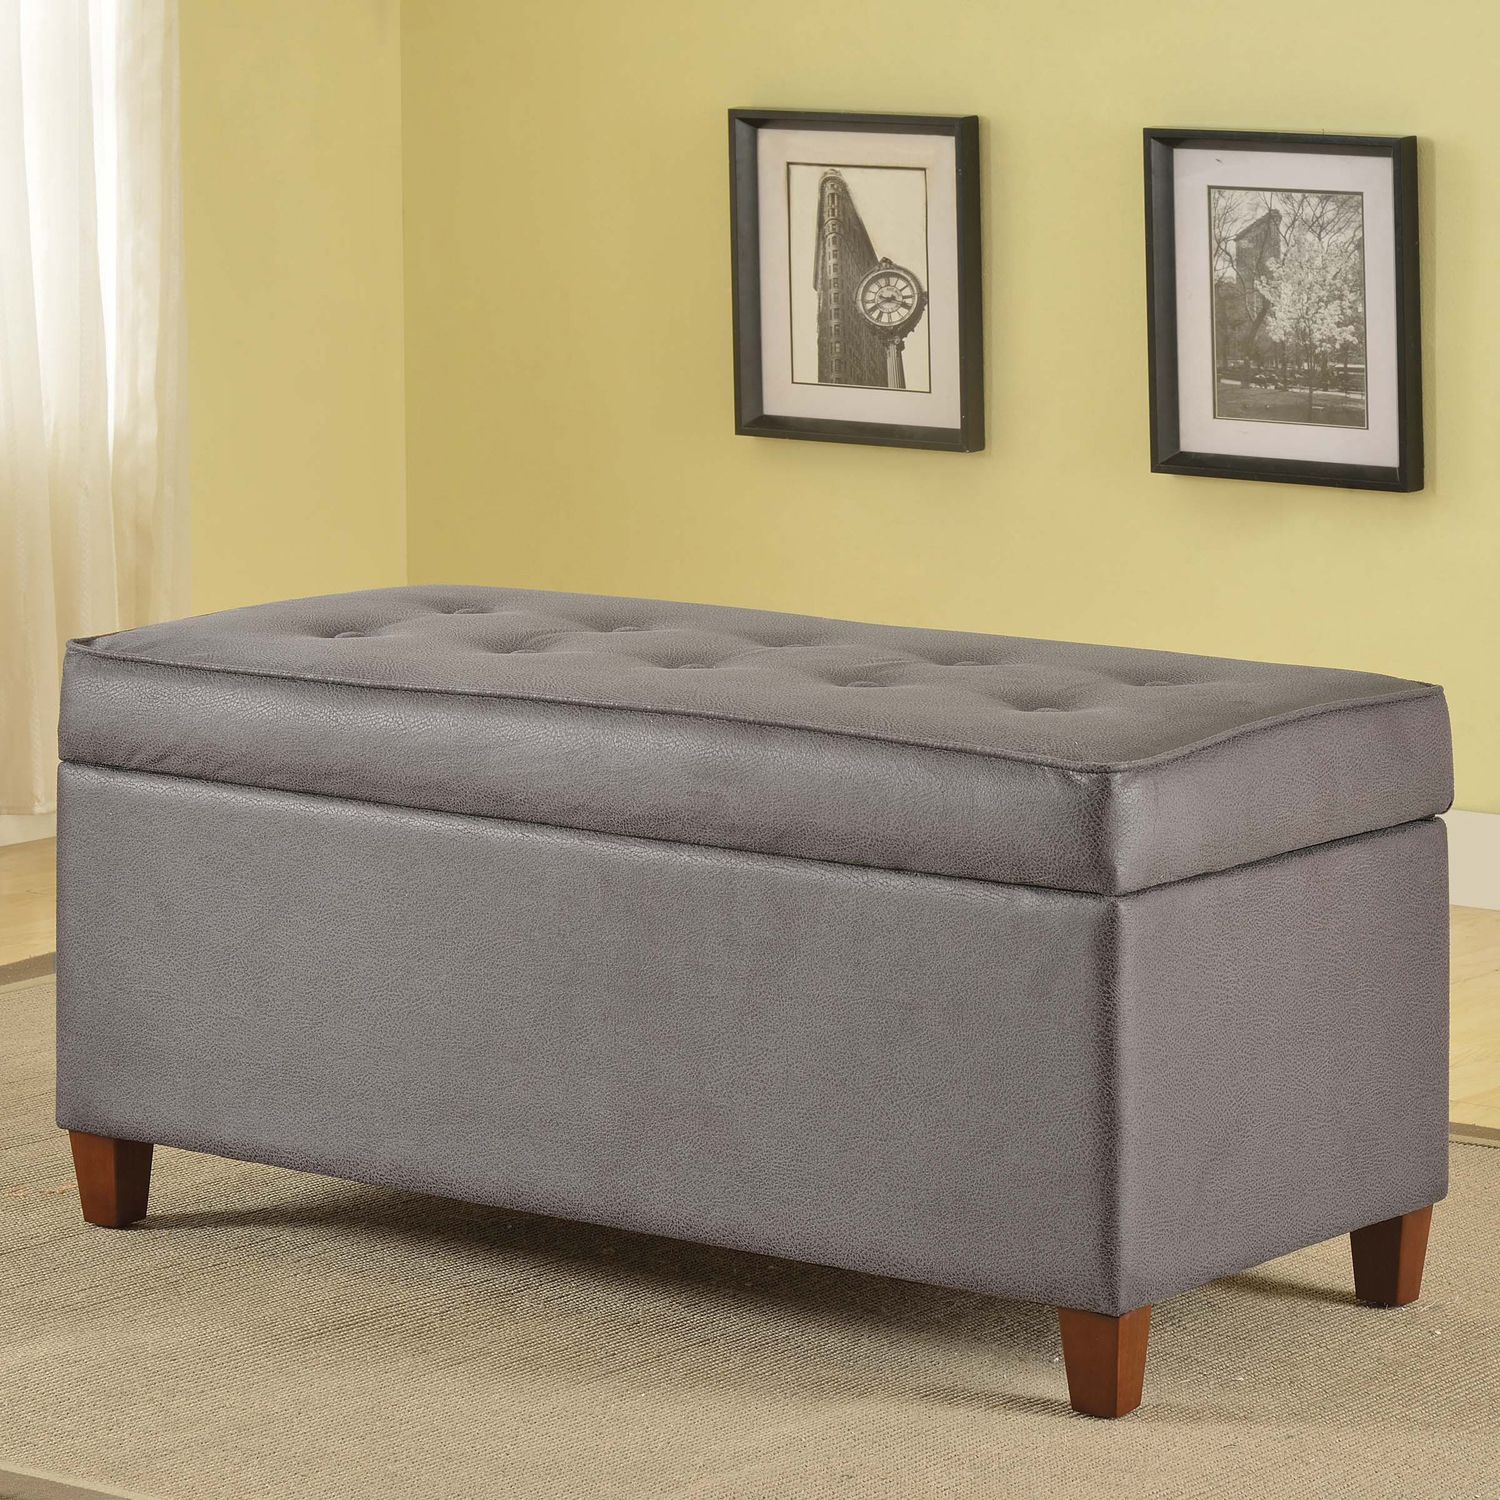 Gray Faux Leather Tufted Storage Bench